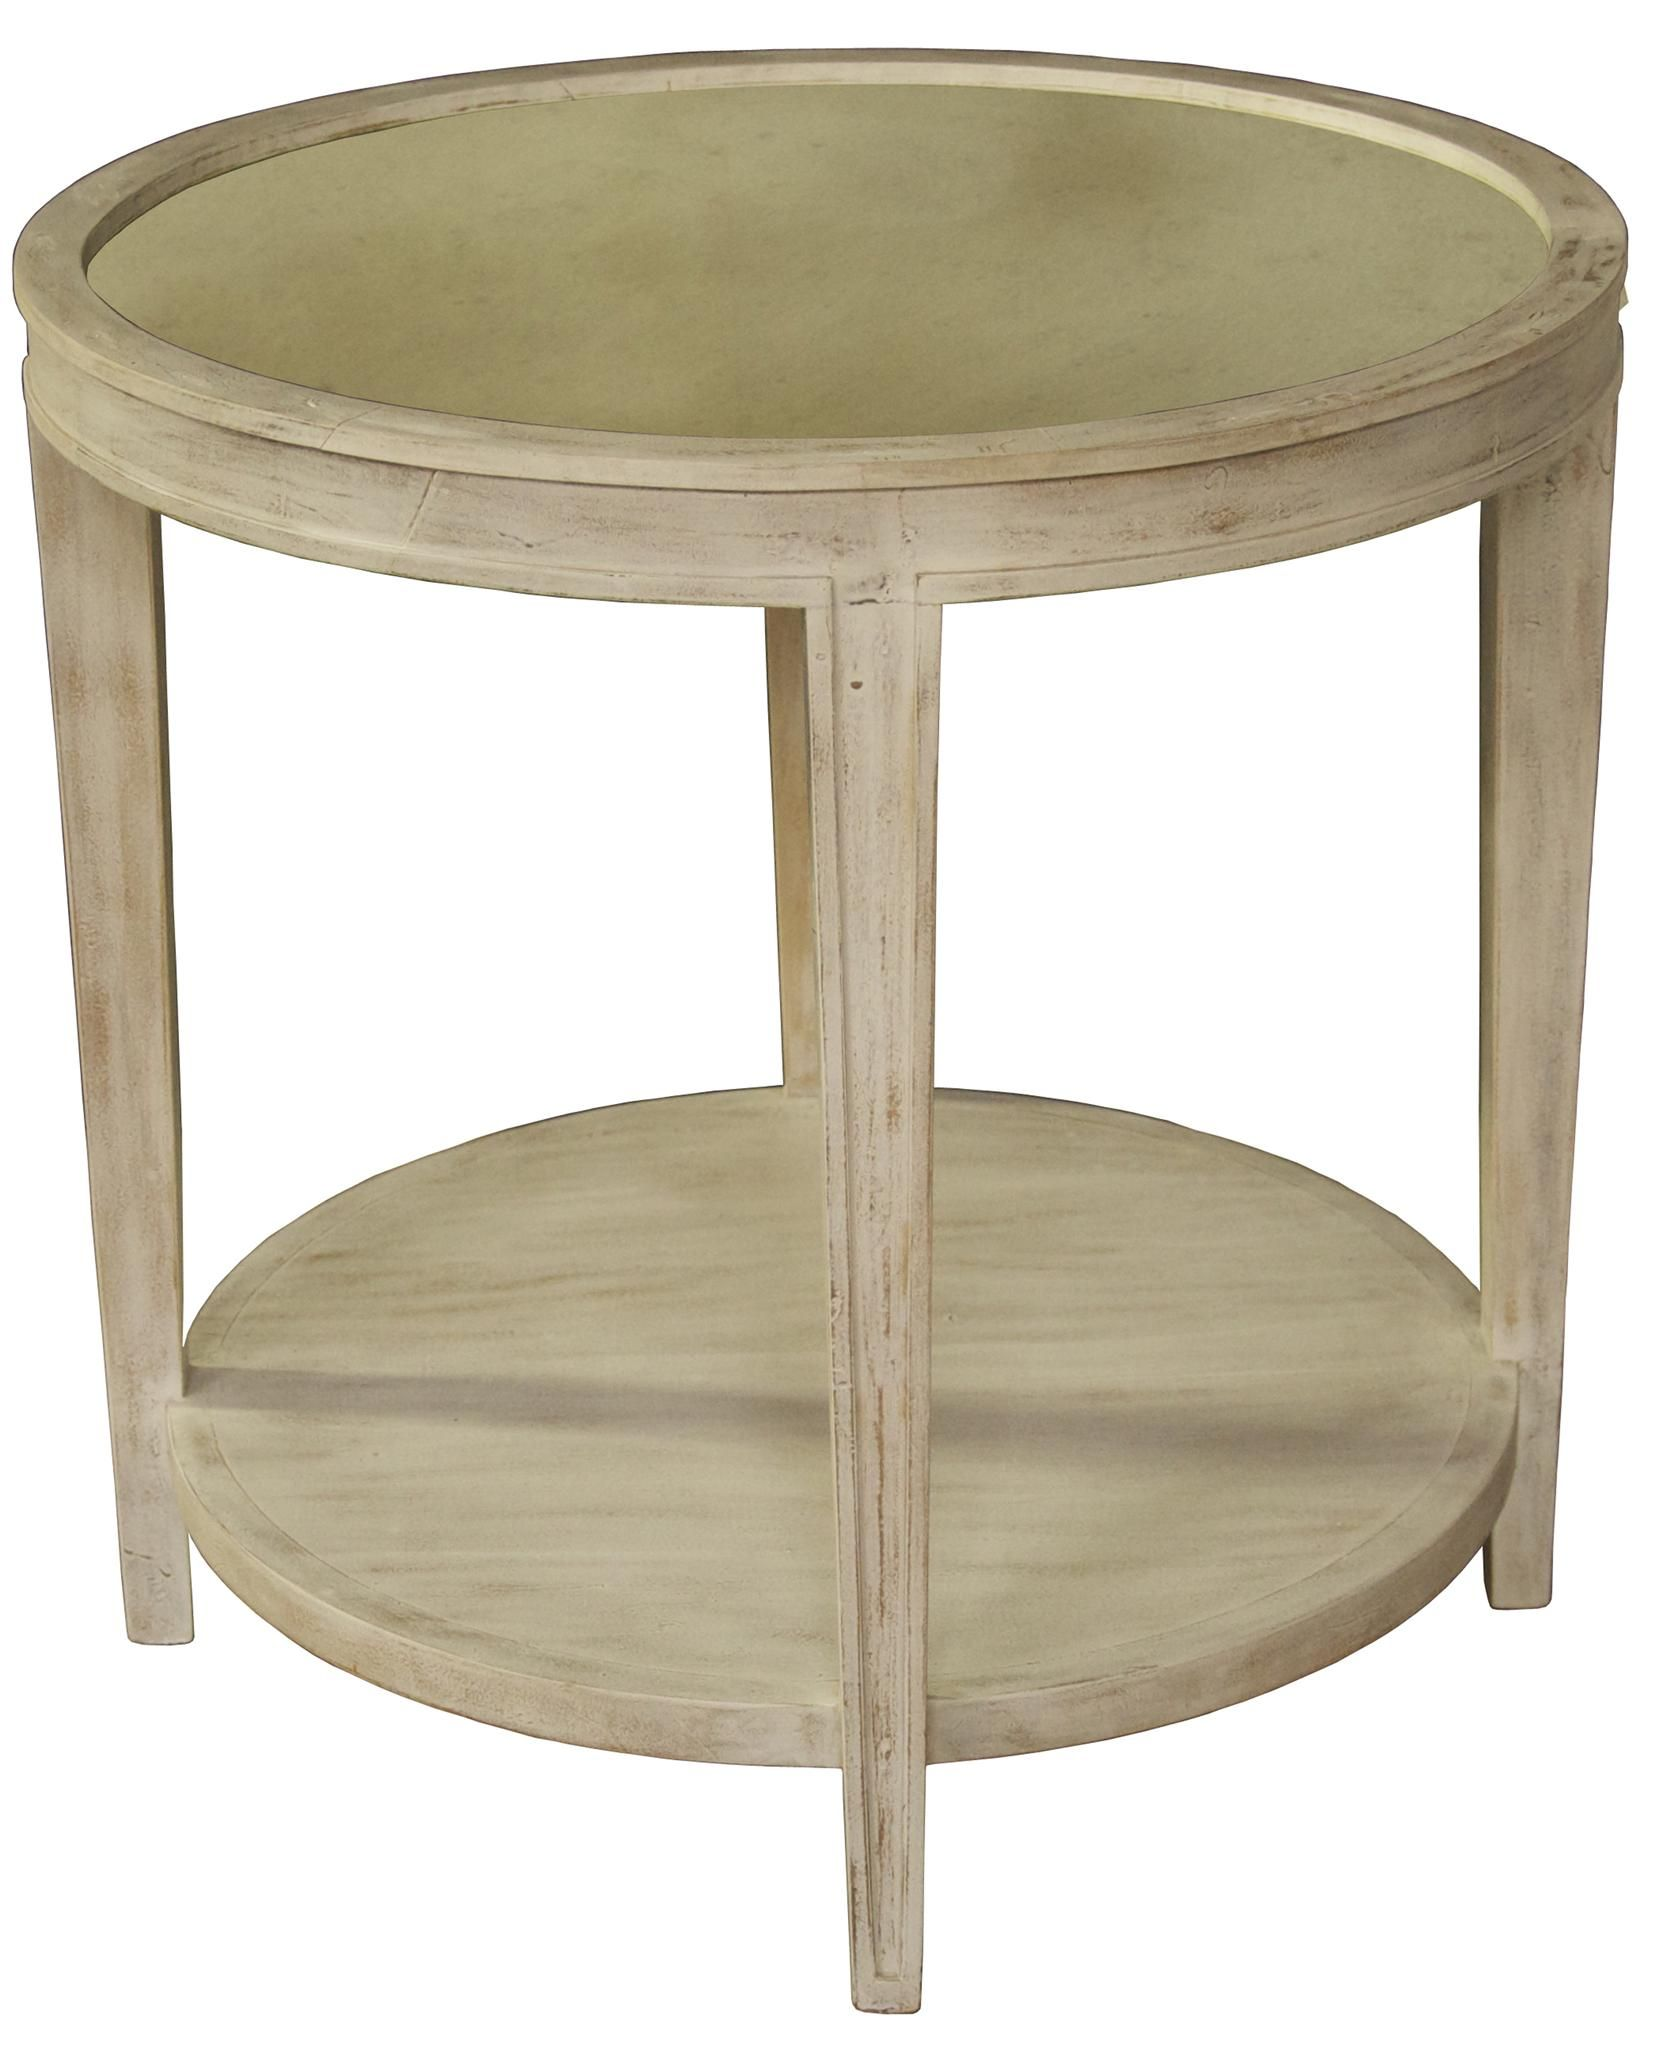 round mahogany antiqued white washed side table mecox gardens whitewash accent west elm armchair acrylic coffee wood glass end tables space saver oriental lamps small slim bedside